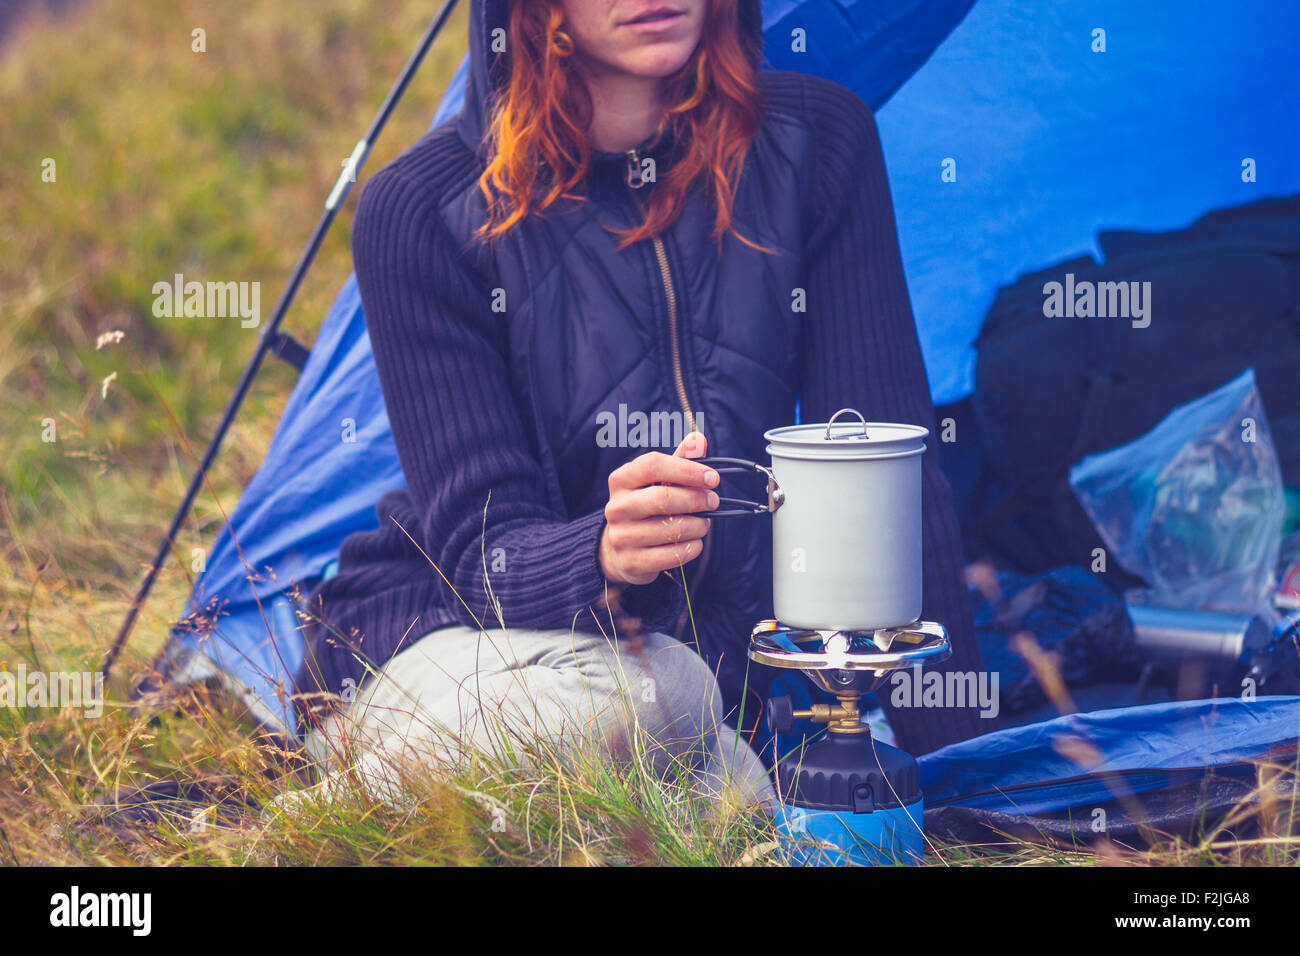 Young woman in tent cooking with camping stove Stock Photo